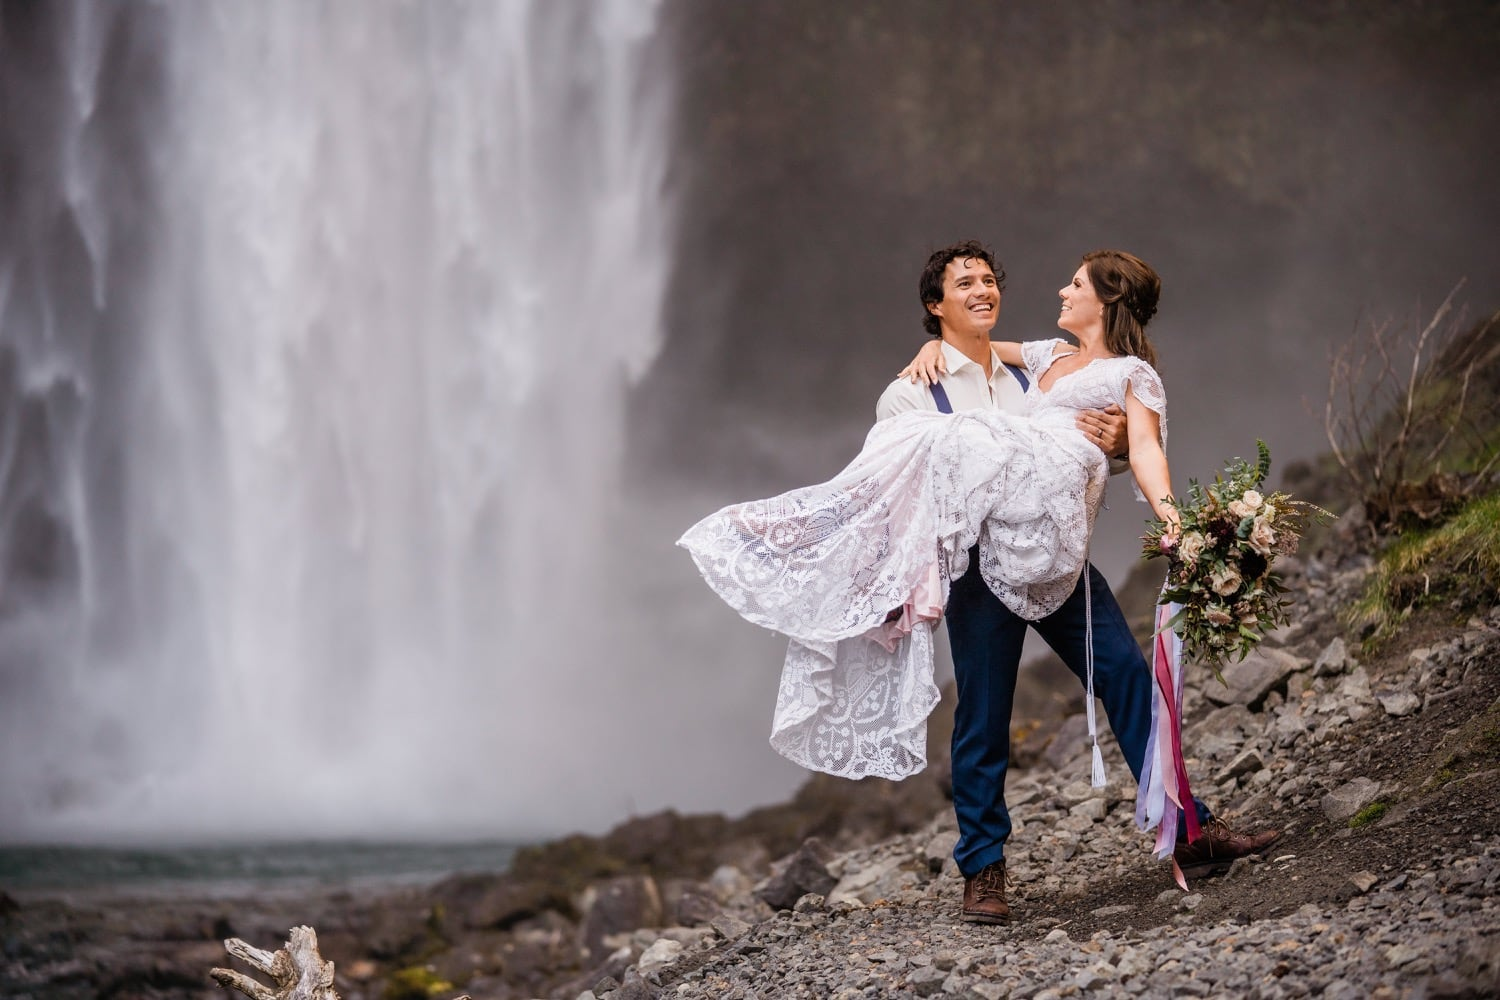 A groom holds his bride and they both smile at the base of a waterfall